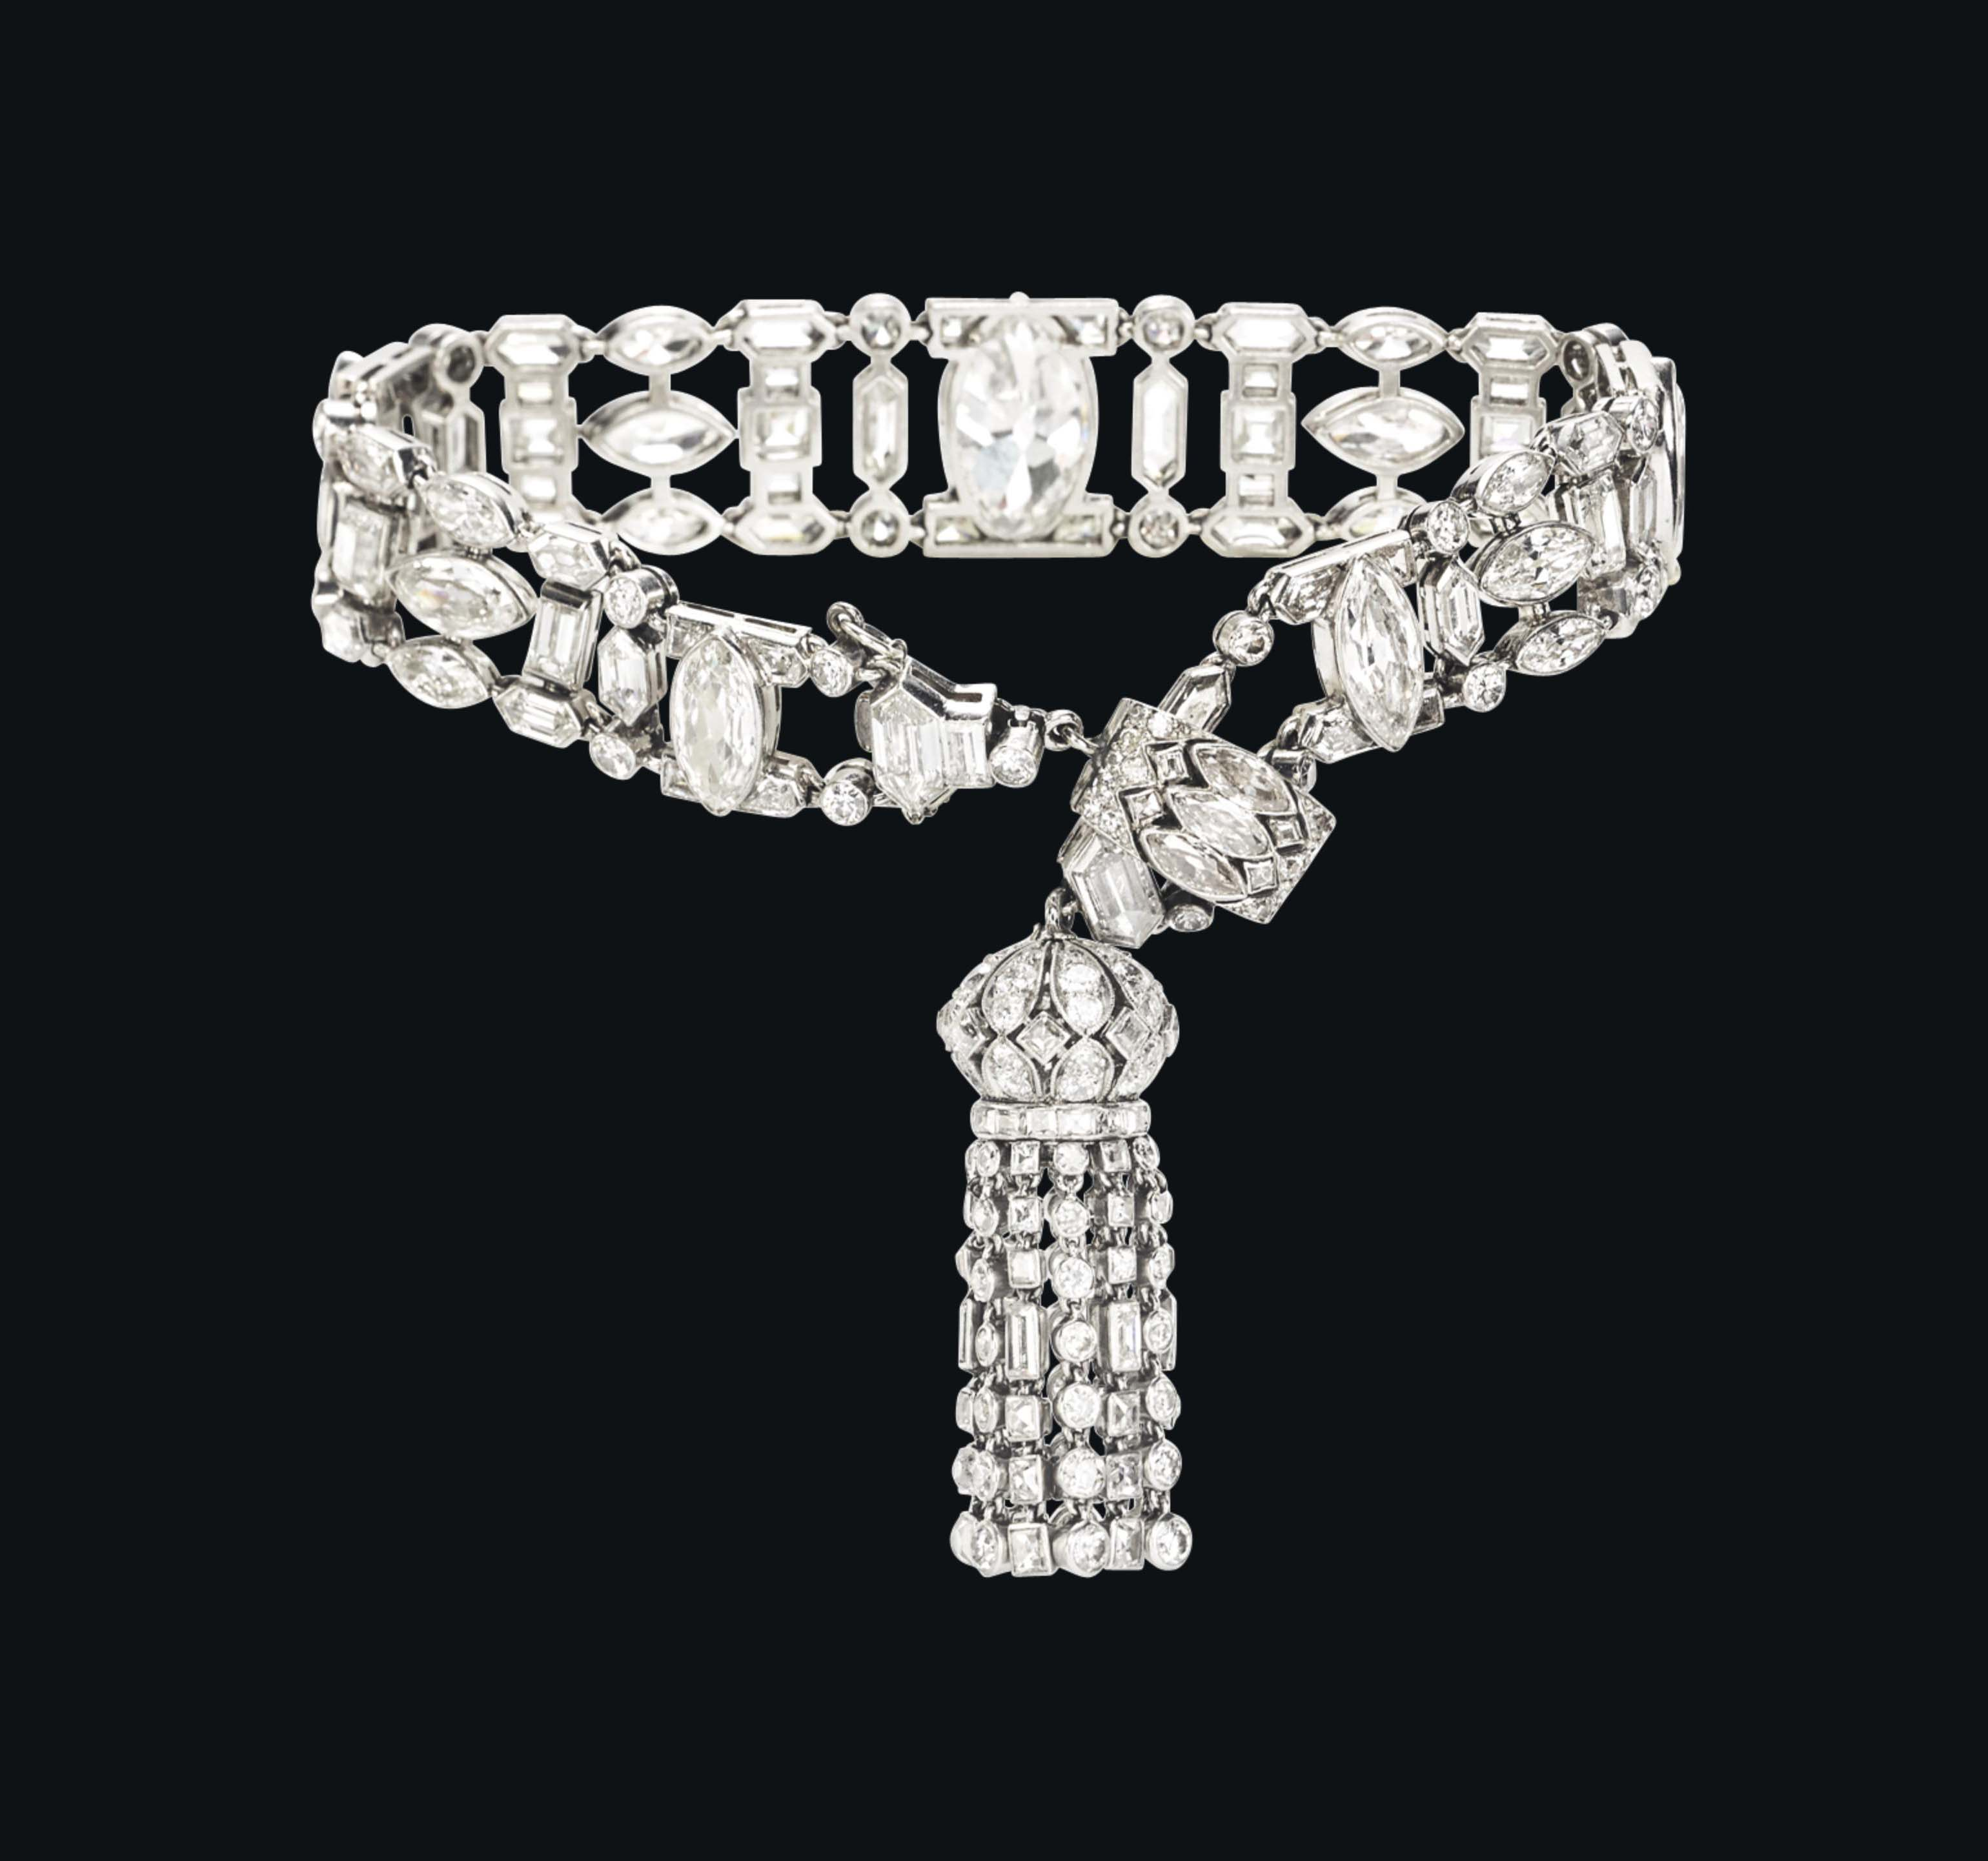 art deco jewellery essay Art deco - history and modern influence - free download as pdf file (pdf) or read online for free an essay on the art deco movement spent about 20 hours researching and writing this paper.